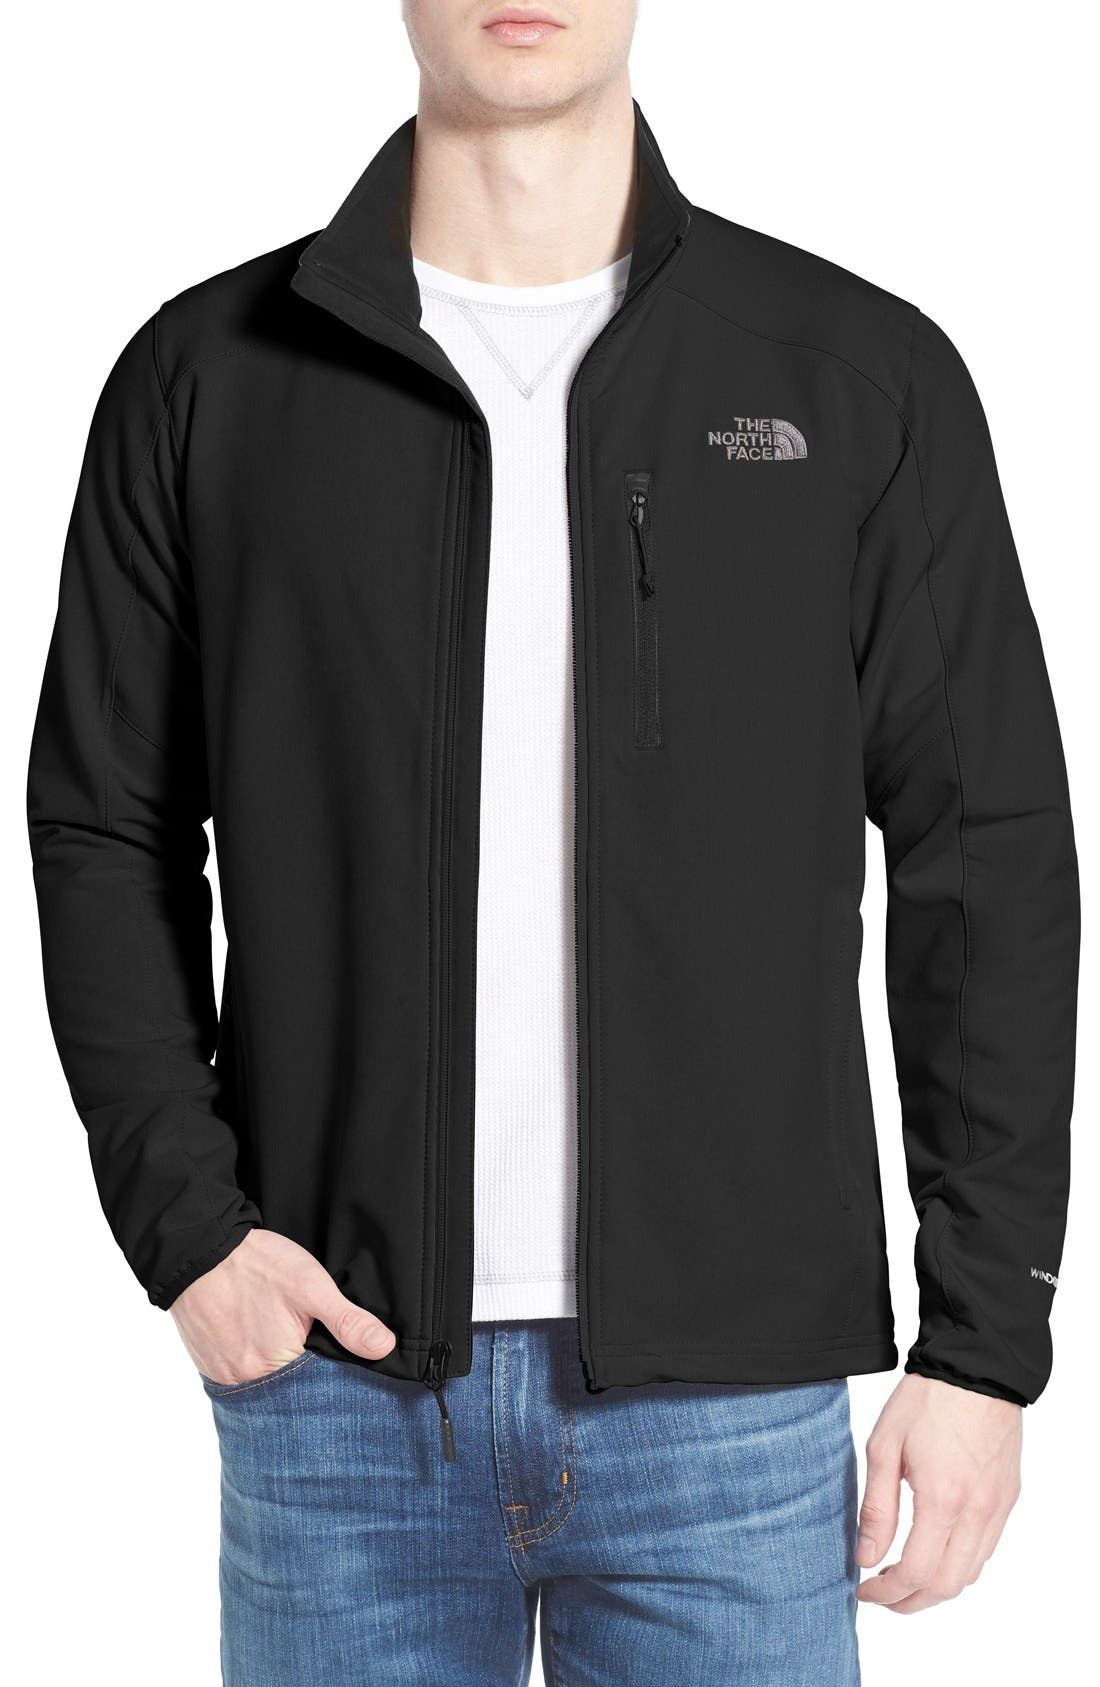 North face jacket 750